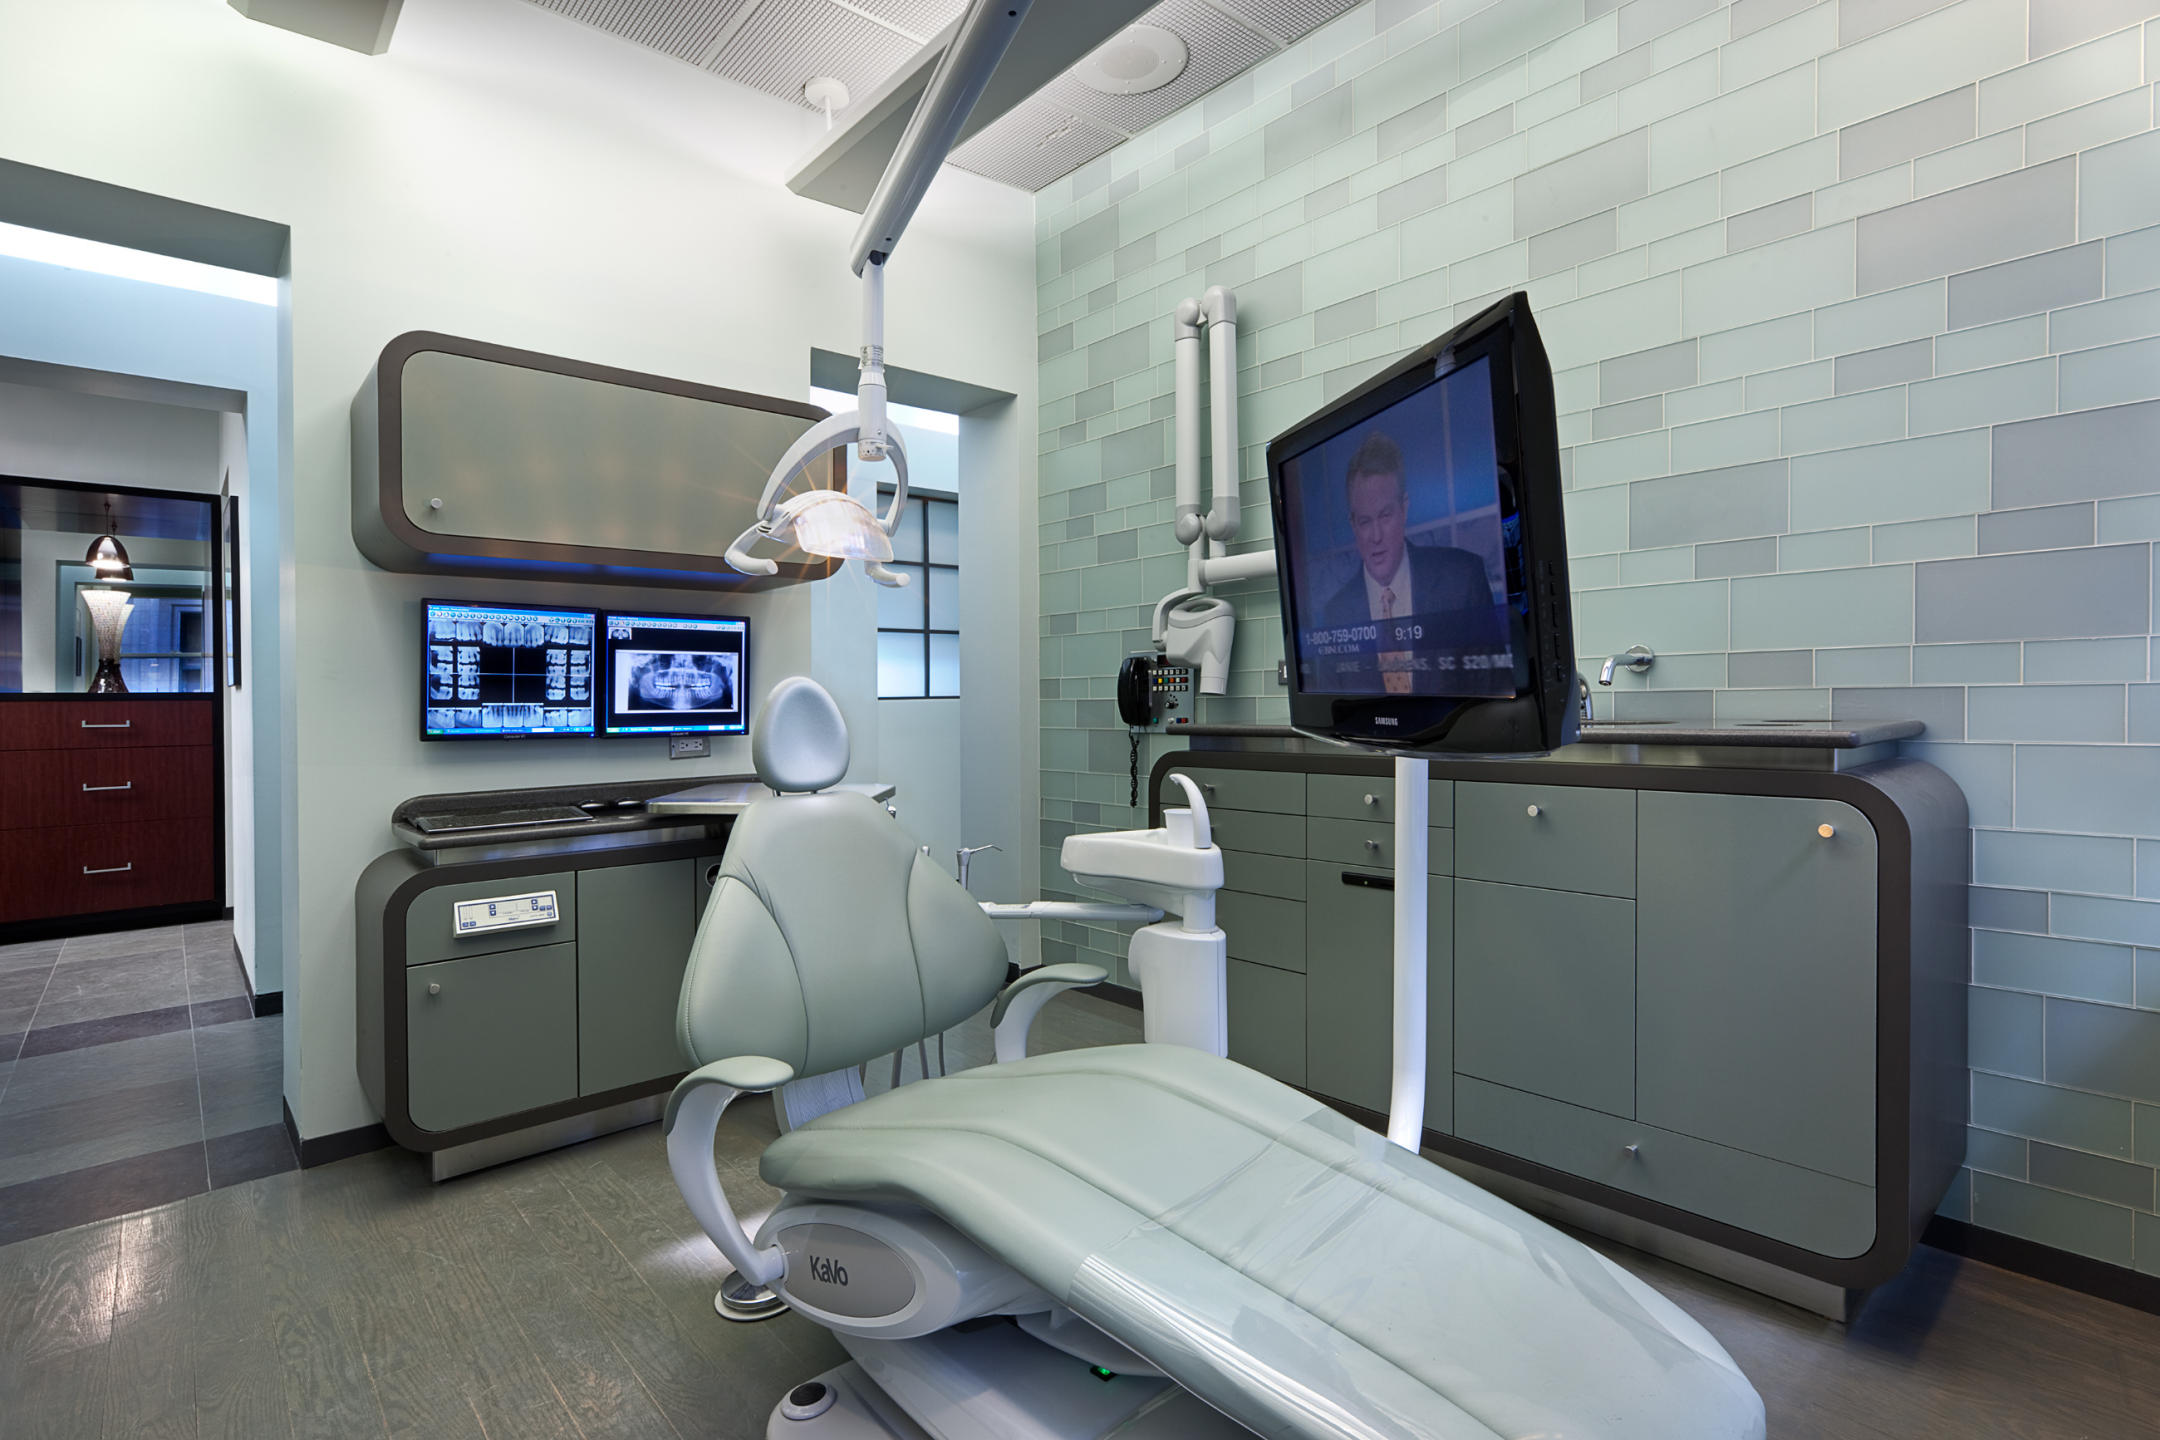 dental office, NYC for advertising and promotional usage : Miscellanous Projects : New York NY Architectural Photographer | Interior and Exterior